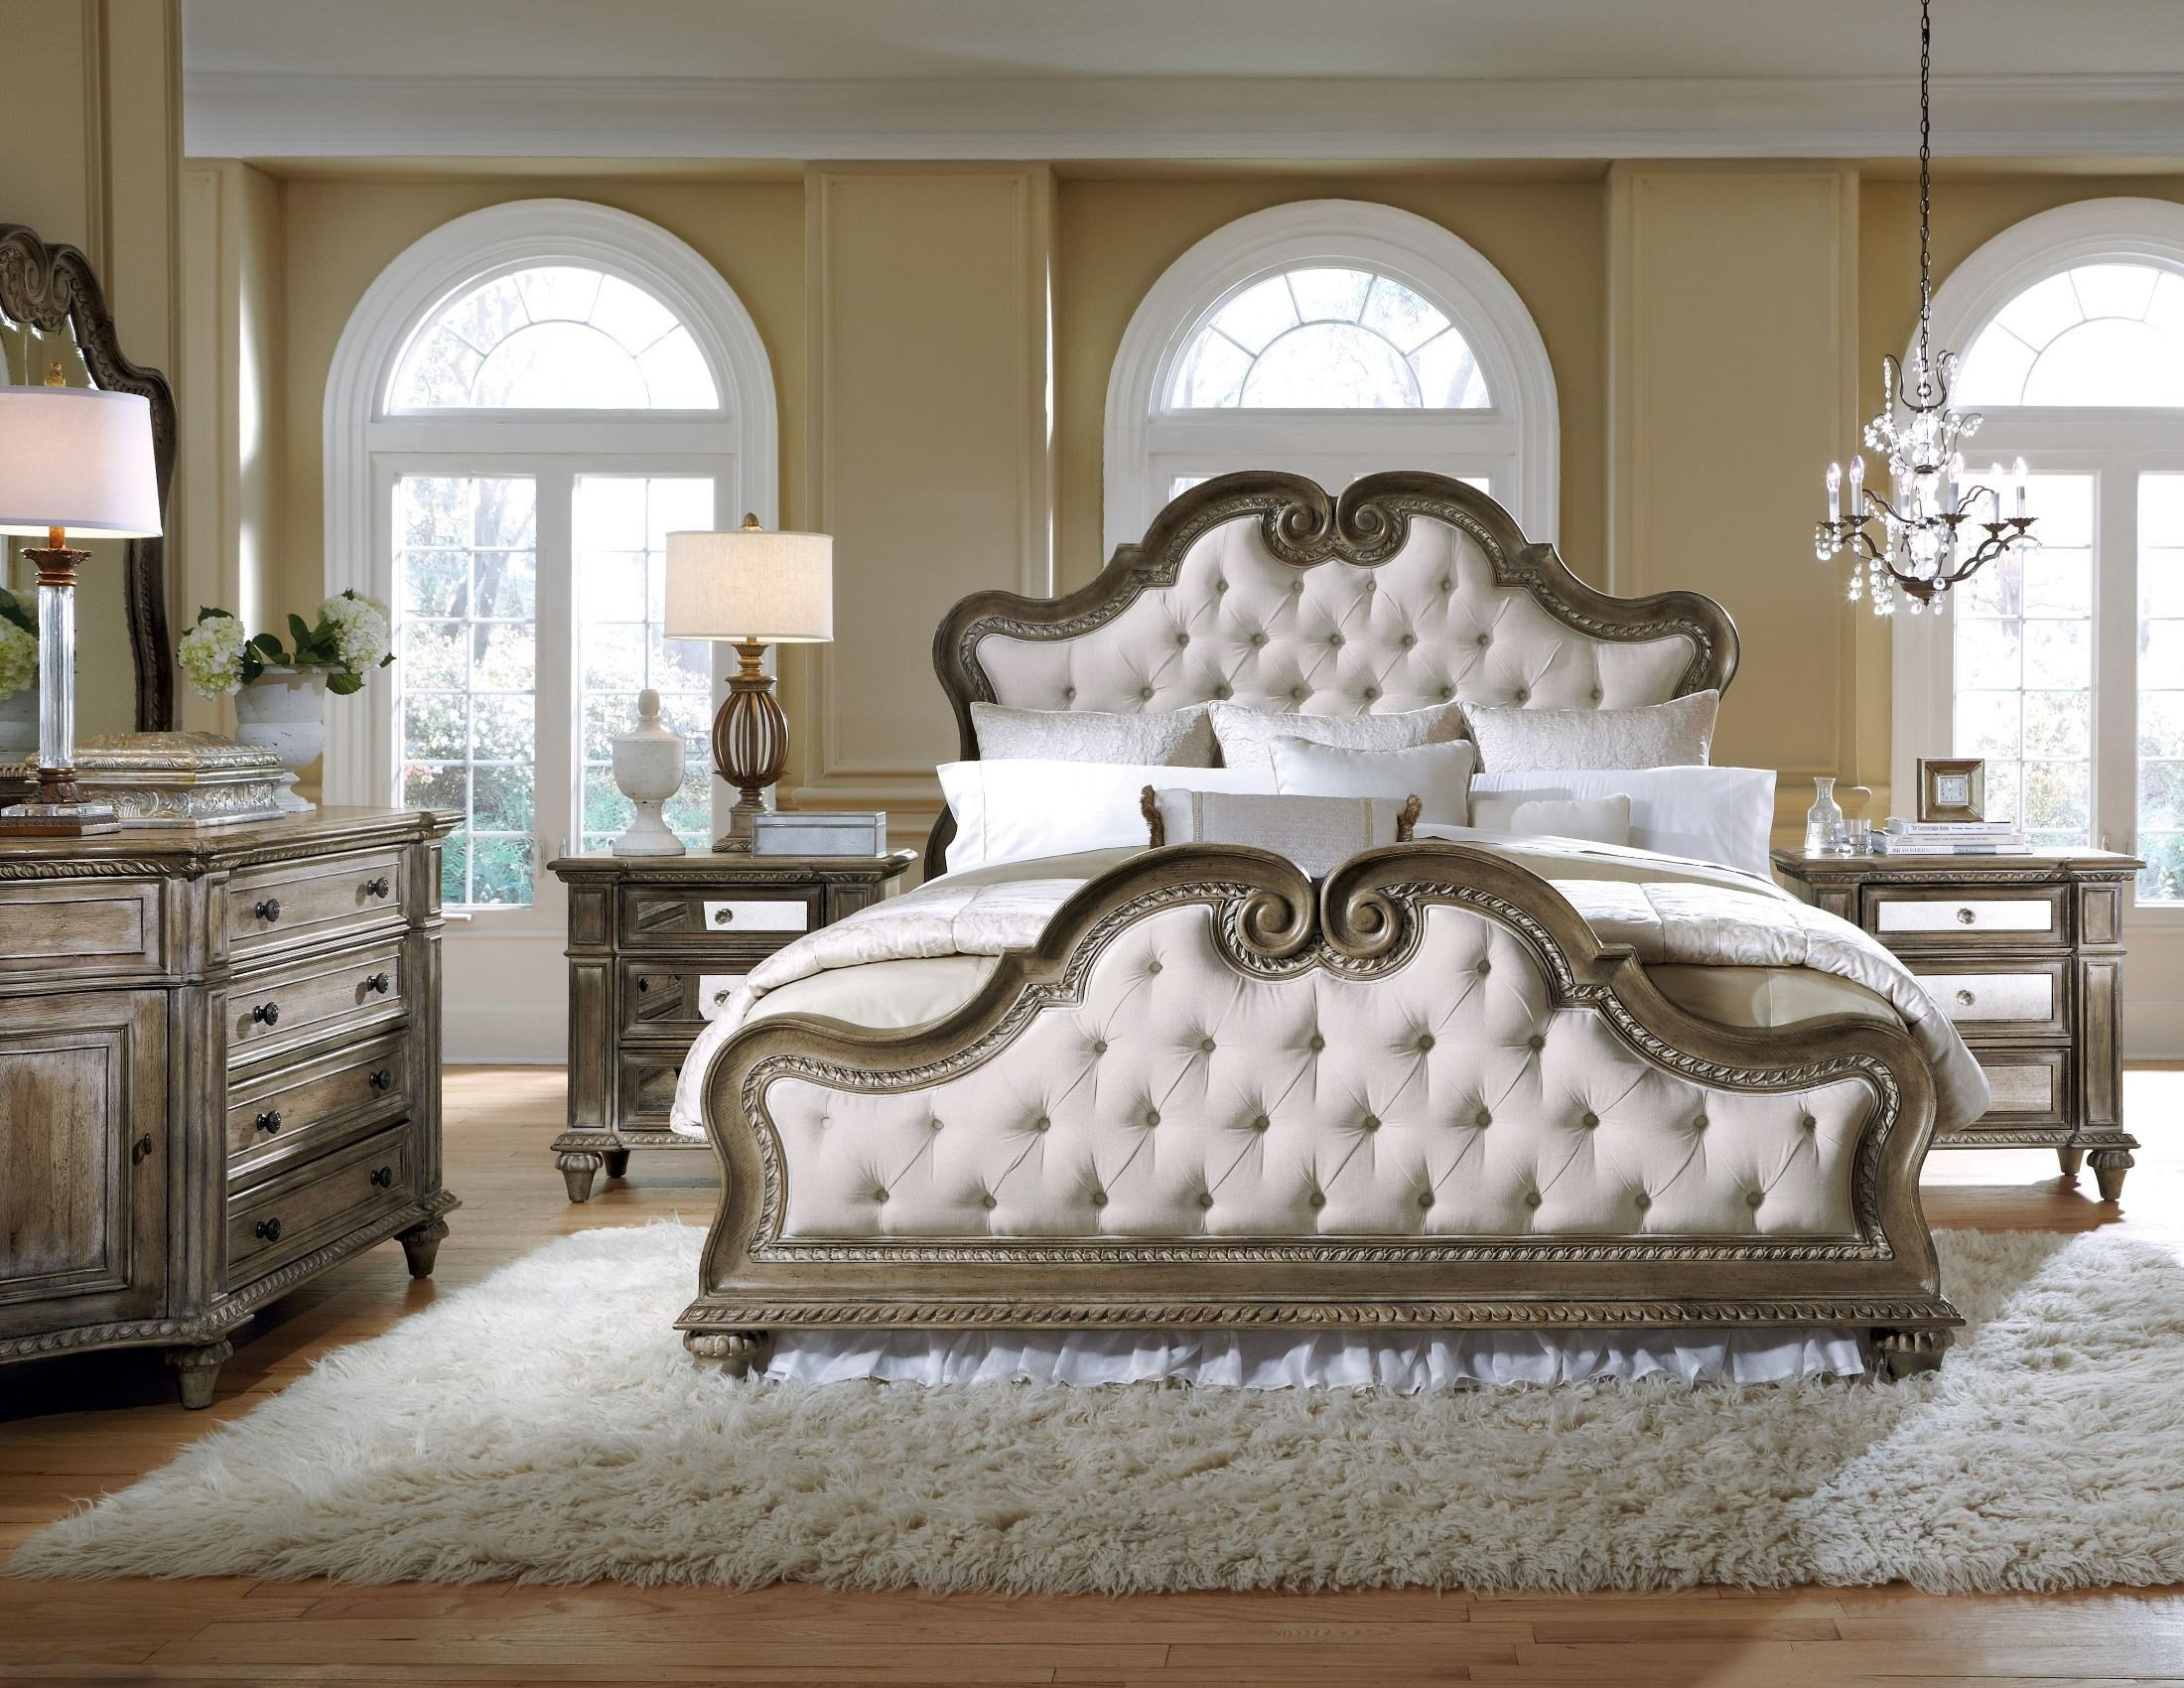 Best Arabella Upholstered Bedroom Set 211170 211171 211172 With Pictures